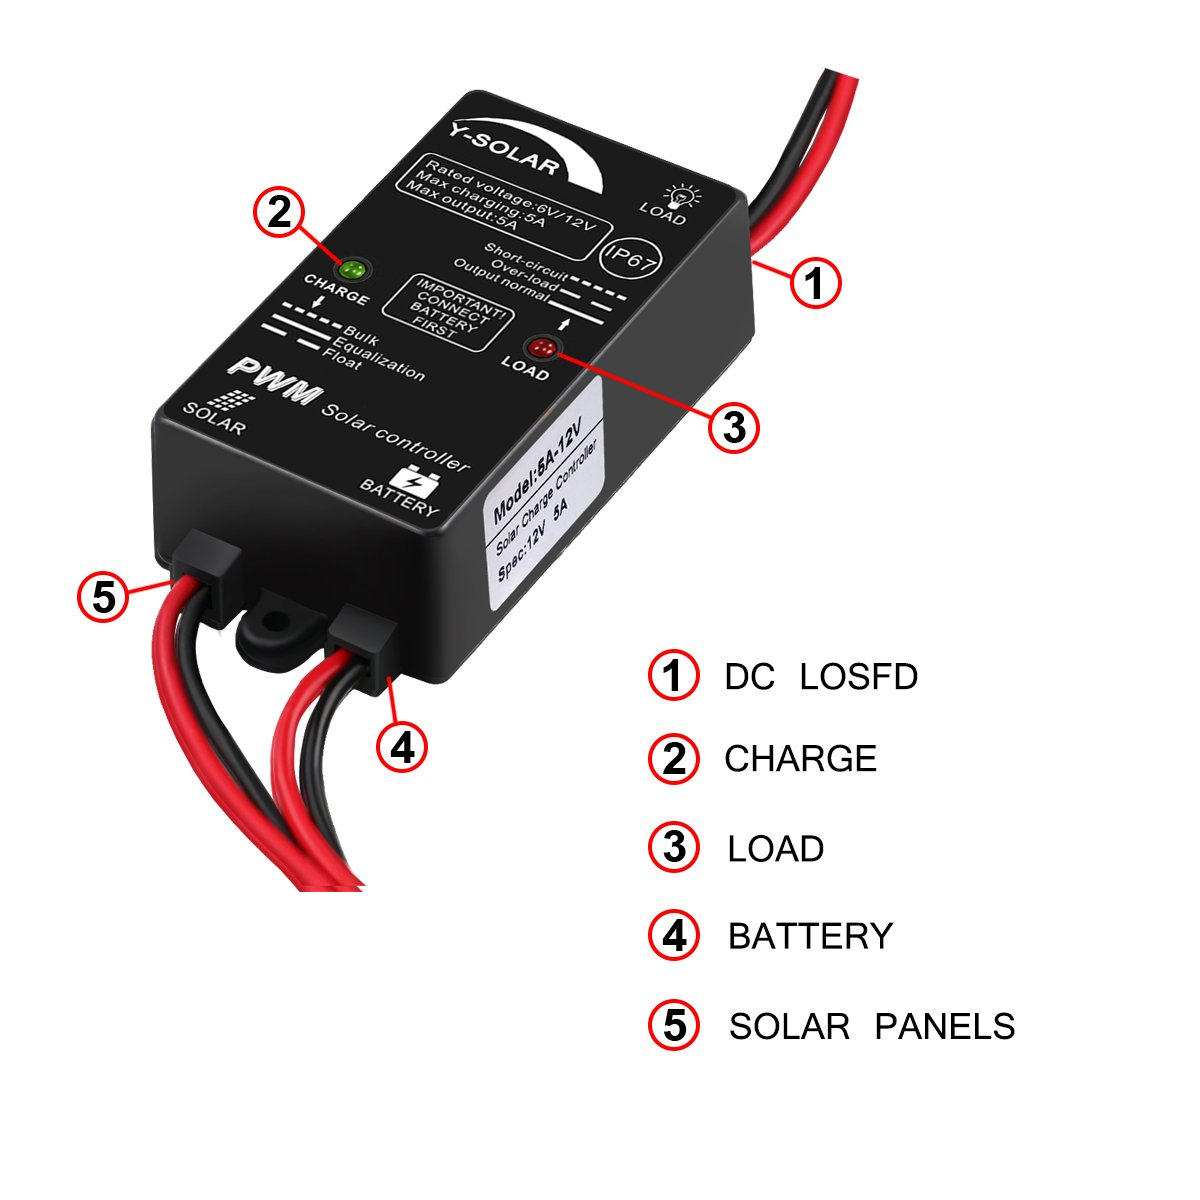 Solar Charge Controller Waterproof Y 5a Pwm Mode 12v 24v 6a Small Control Ce Panel 6v Auto 24hours Load On Ip67 For